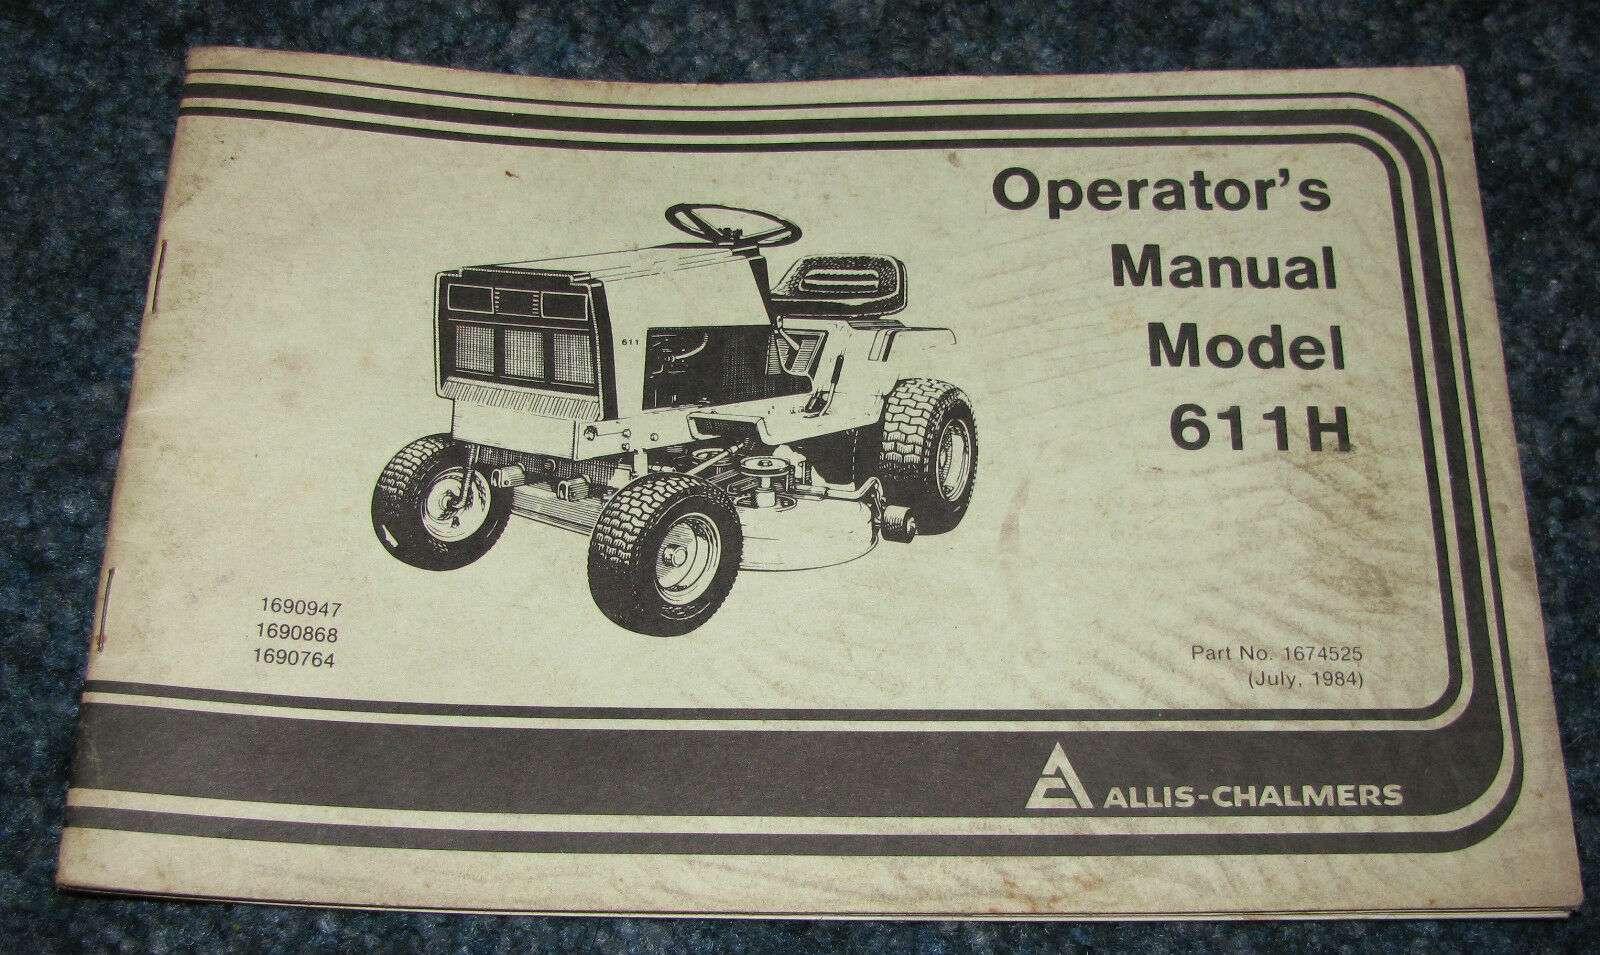 611 Allis Chalmers Wiring Schematic Diagrams Garden Tractor Diagram Pics H Lawn Operators Owners Manual Ac Distributor